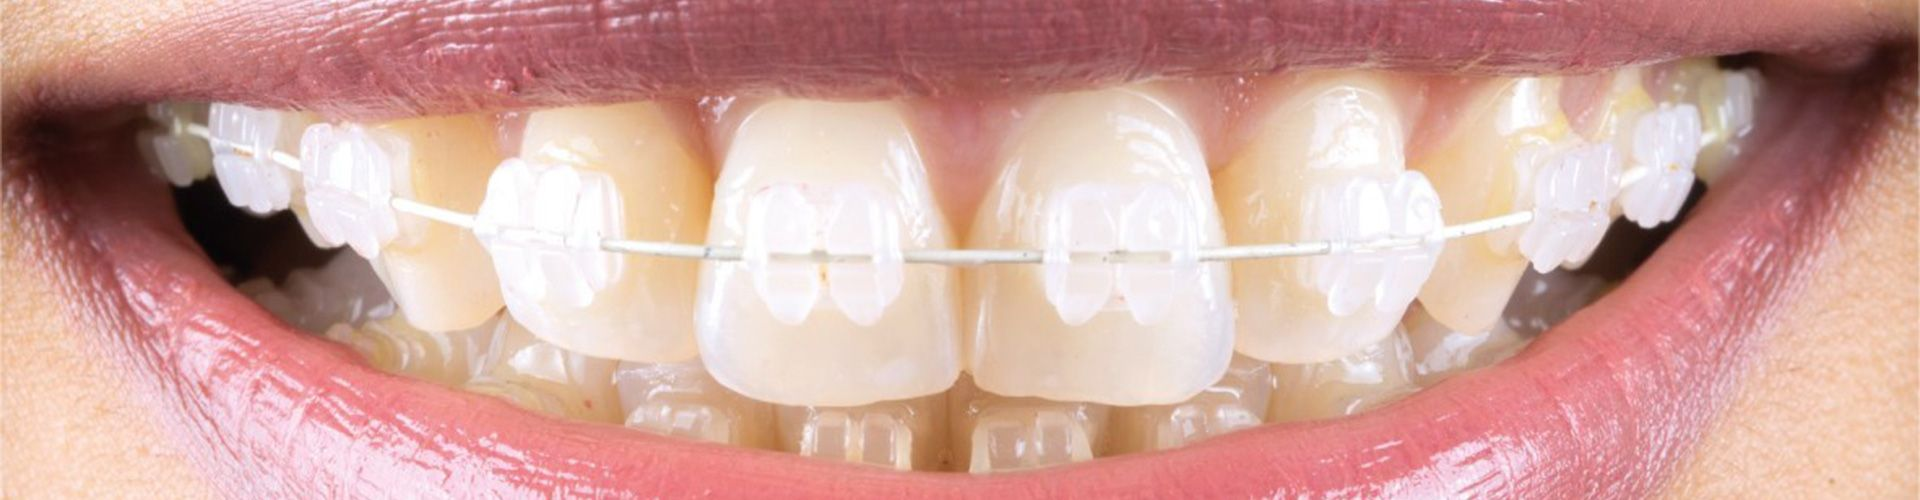 dental braces and orthodontics - Smile Dental Group Ilminster